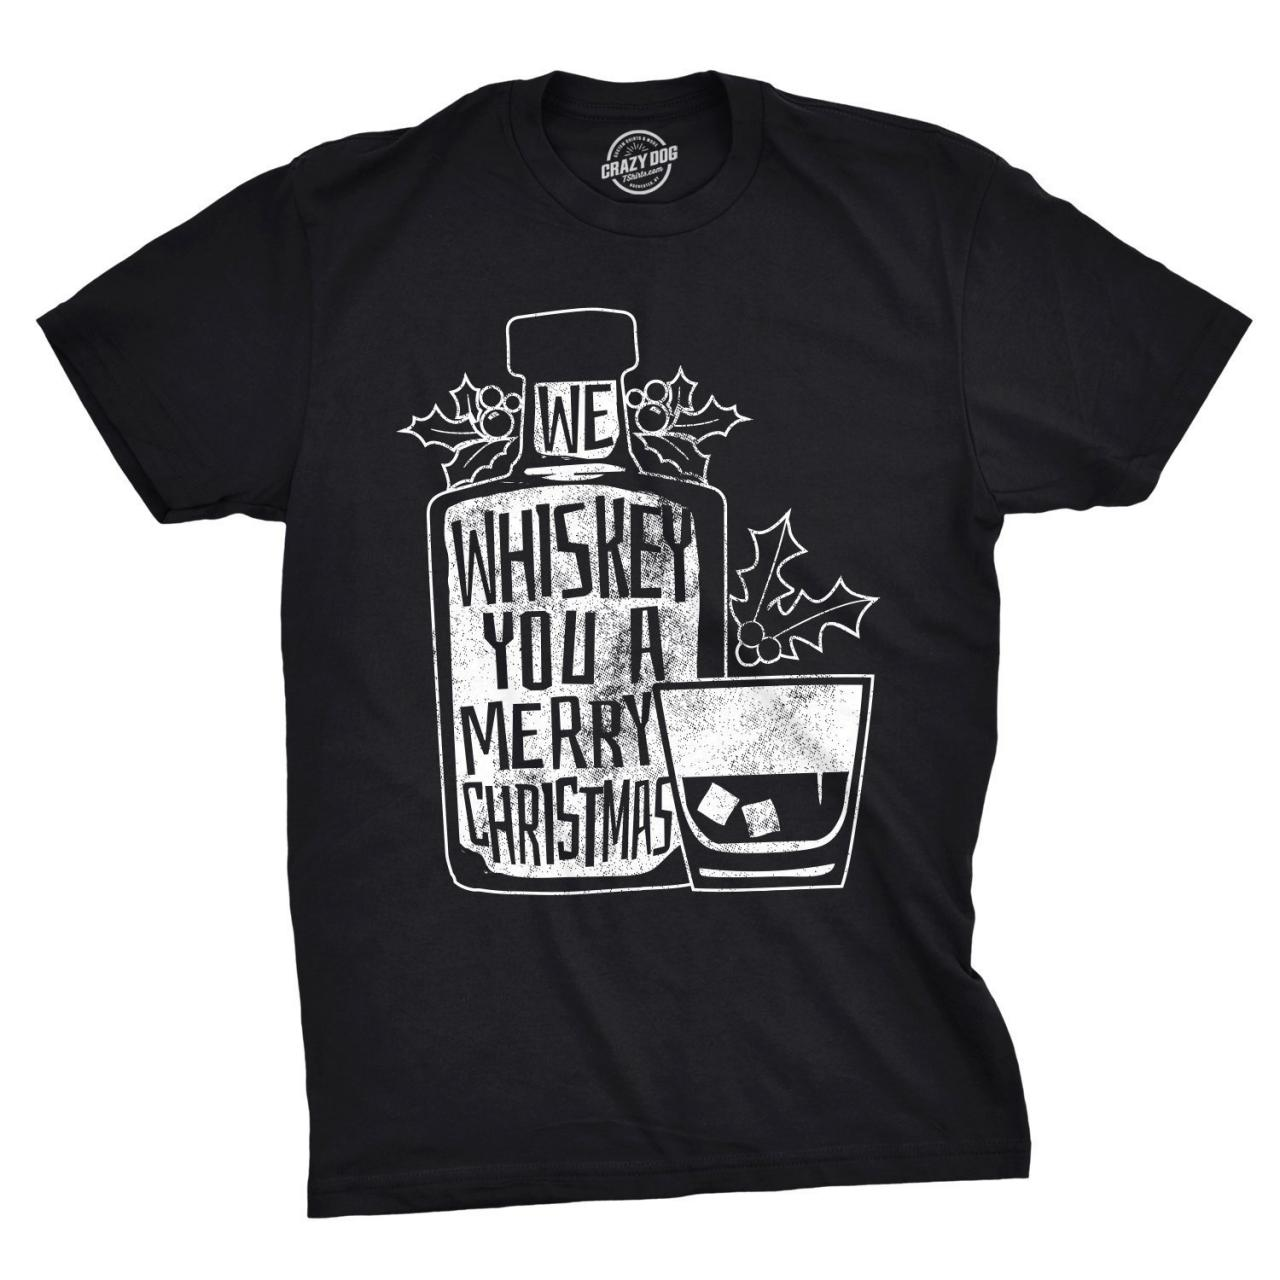 We Whiskey You A Merry Christmas, Christmas Shirt Men, Whisky Christmas Shirt, Black T Shirt Xmas, Whiskey Lover Gift, Xmas Drinking Gifts